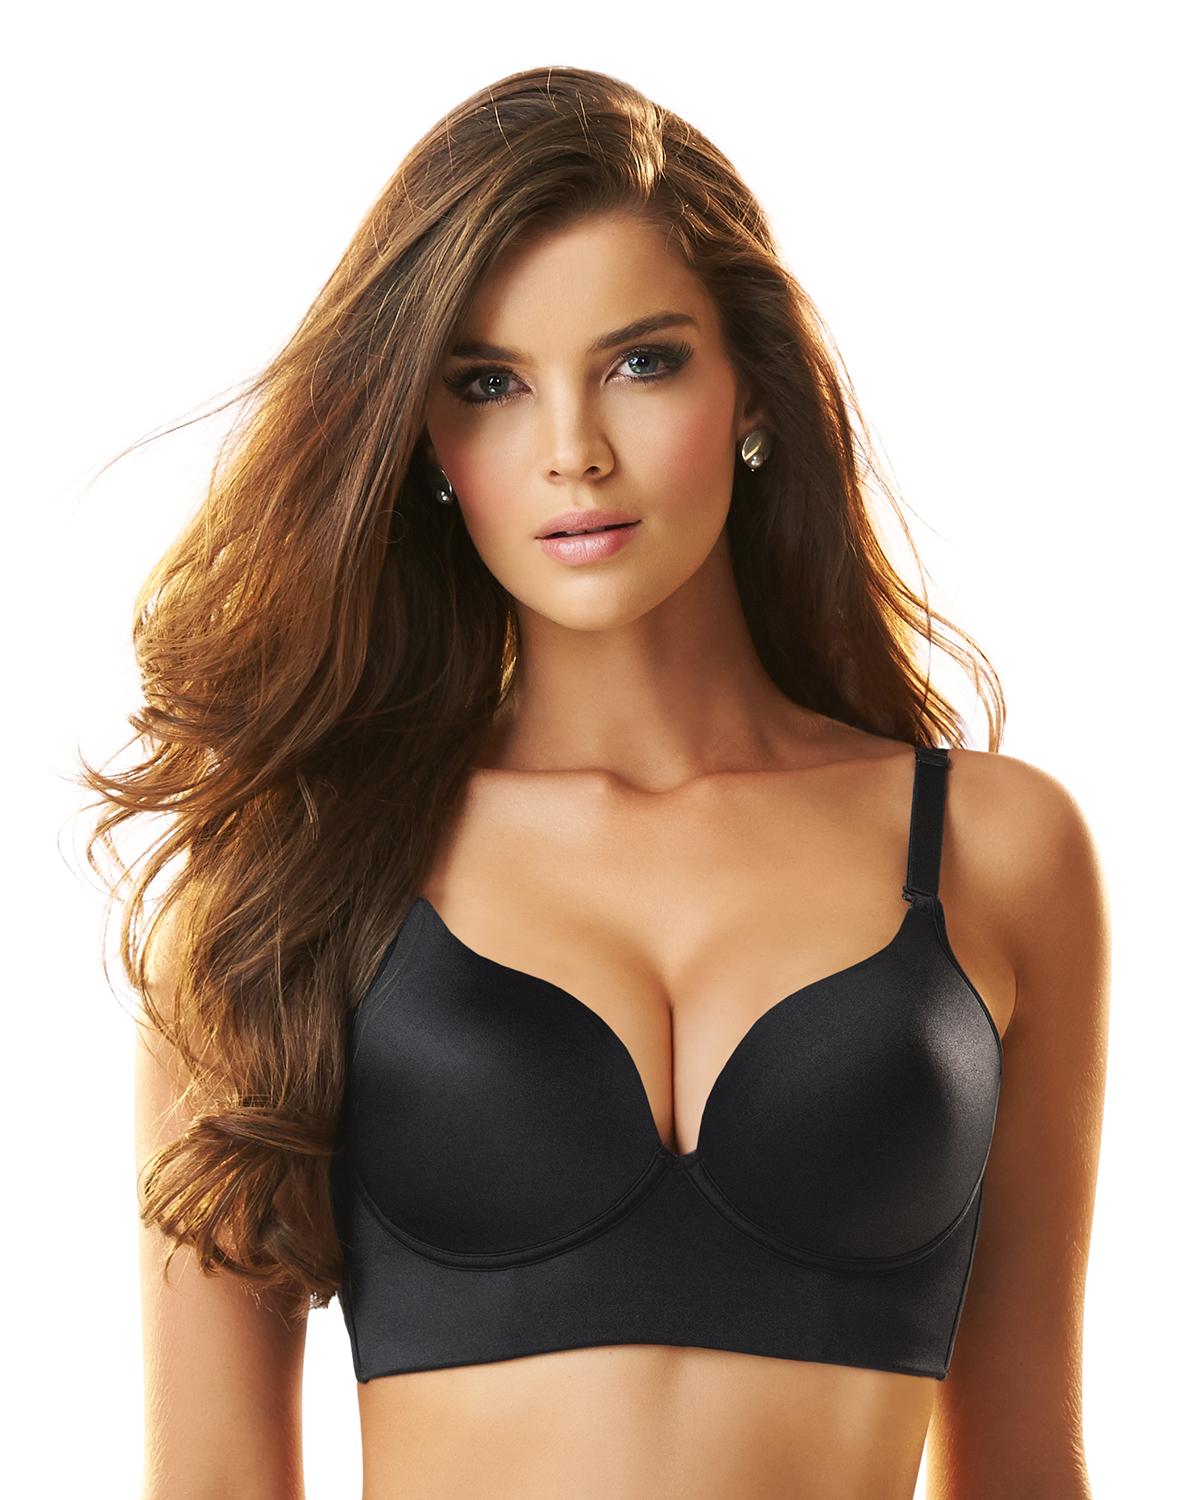 e71463afb24d8 Why You Need a Push-Up Bra   How to Pick the Perfect One For You ...